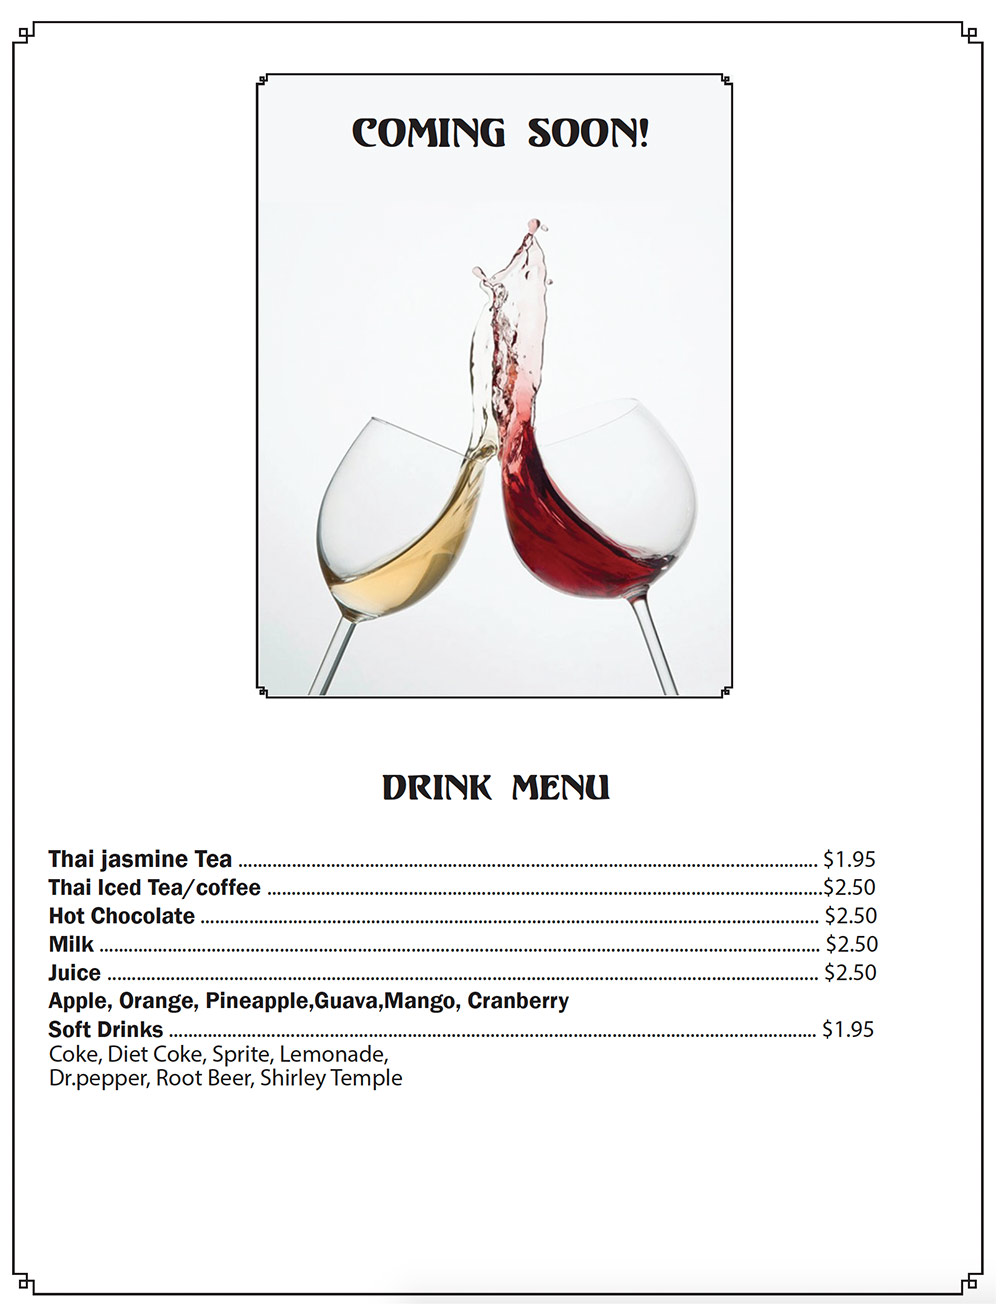 Beau Thai 2 - Castle Rock, Colorado - Menu Page Five